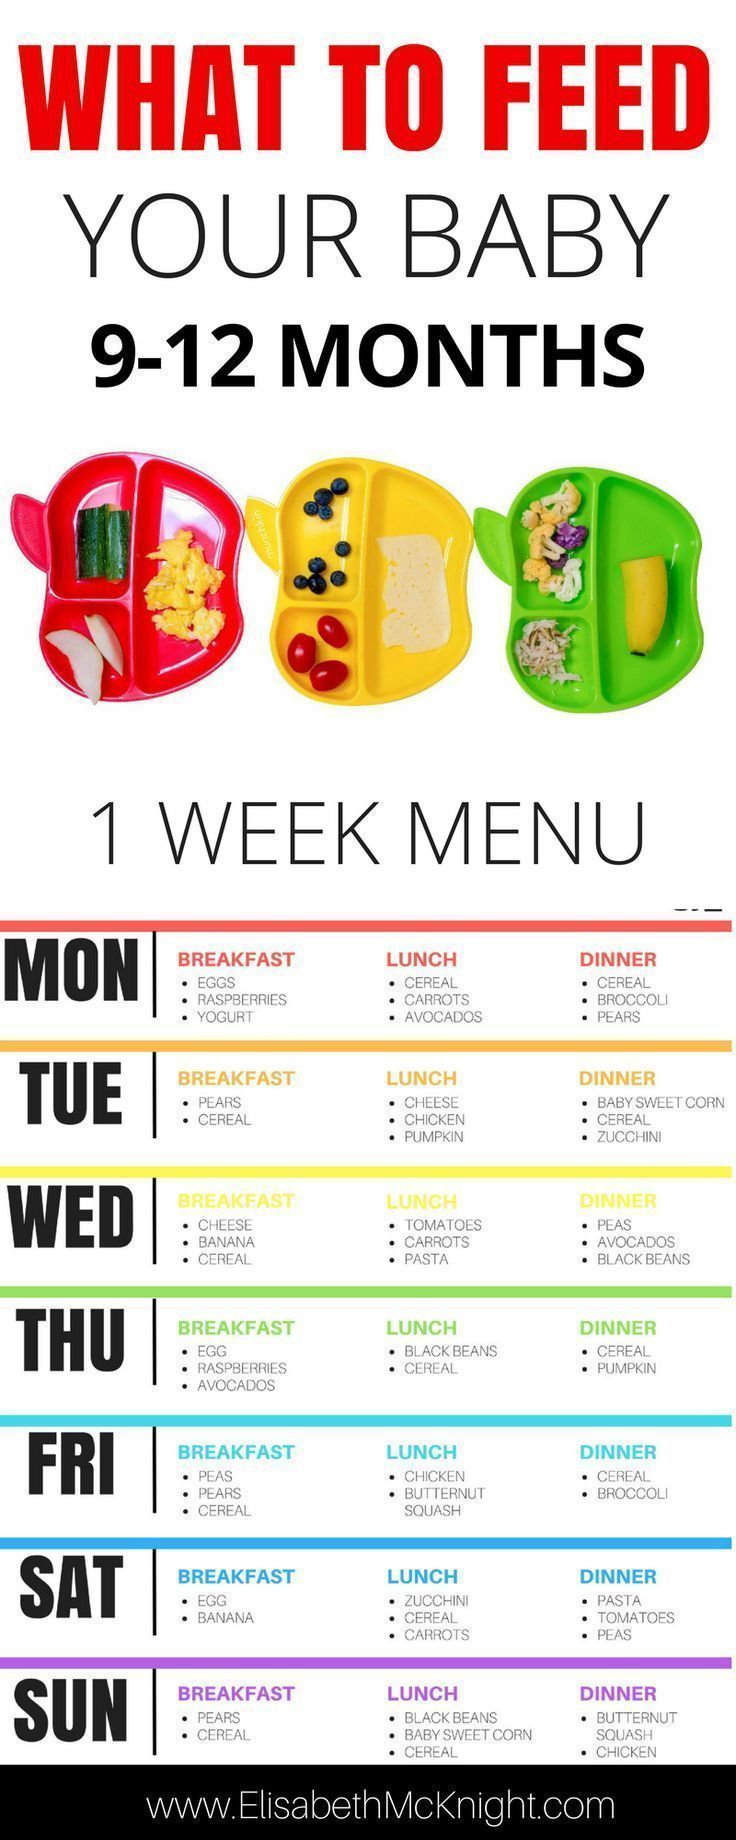 912 Month Baby Feeding Schedule Baby food recipes, Baby